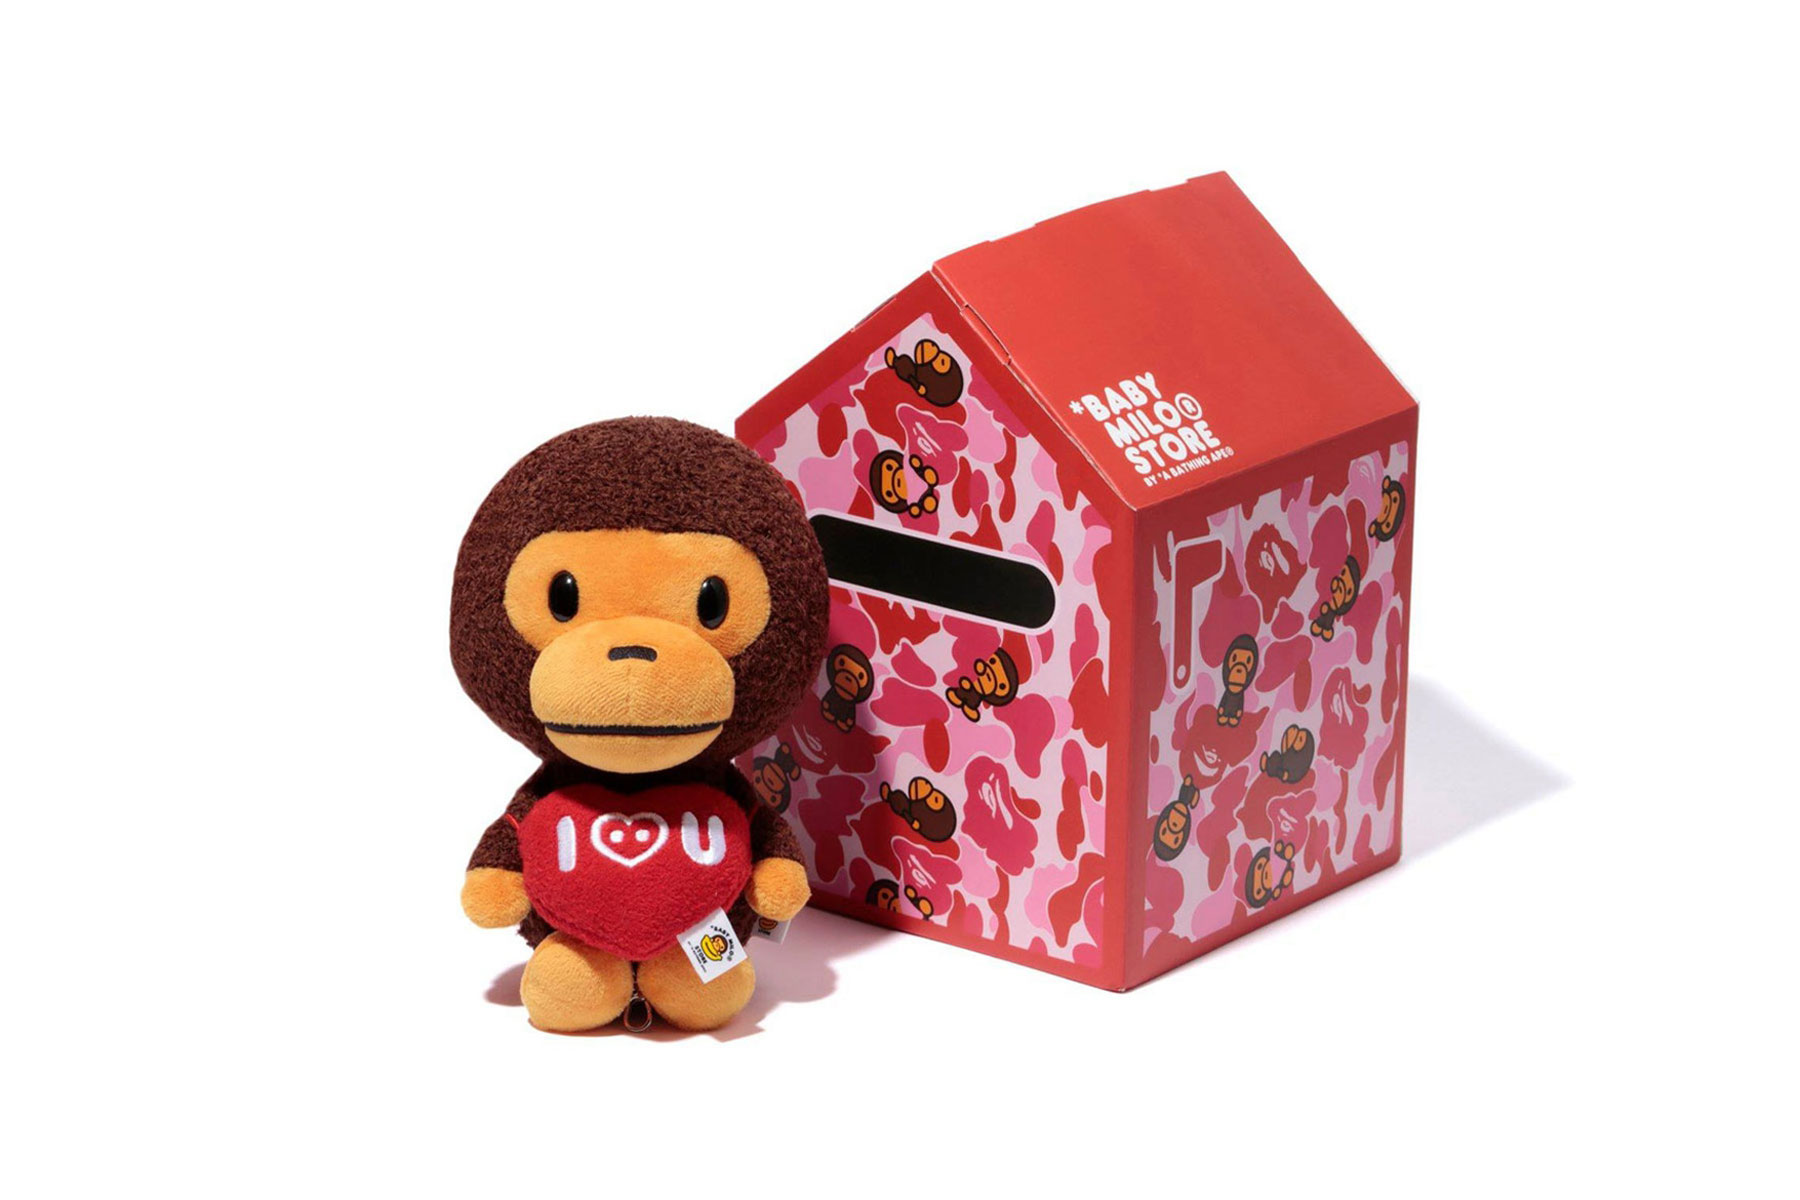 valentine's day gift guide kids toy edition supreme bape baby milo medicom hello kitty starbucks oeuf hersheys le sportsac very hungry catepillar medicom bearbricks